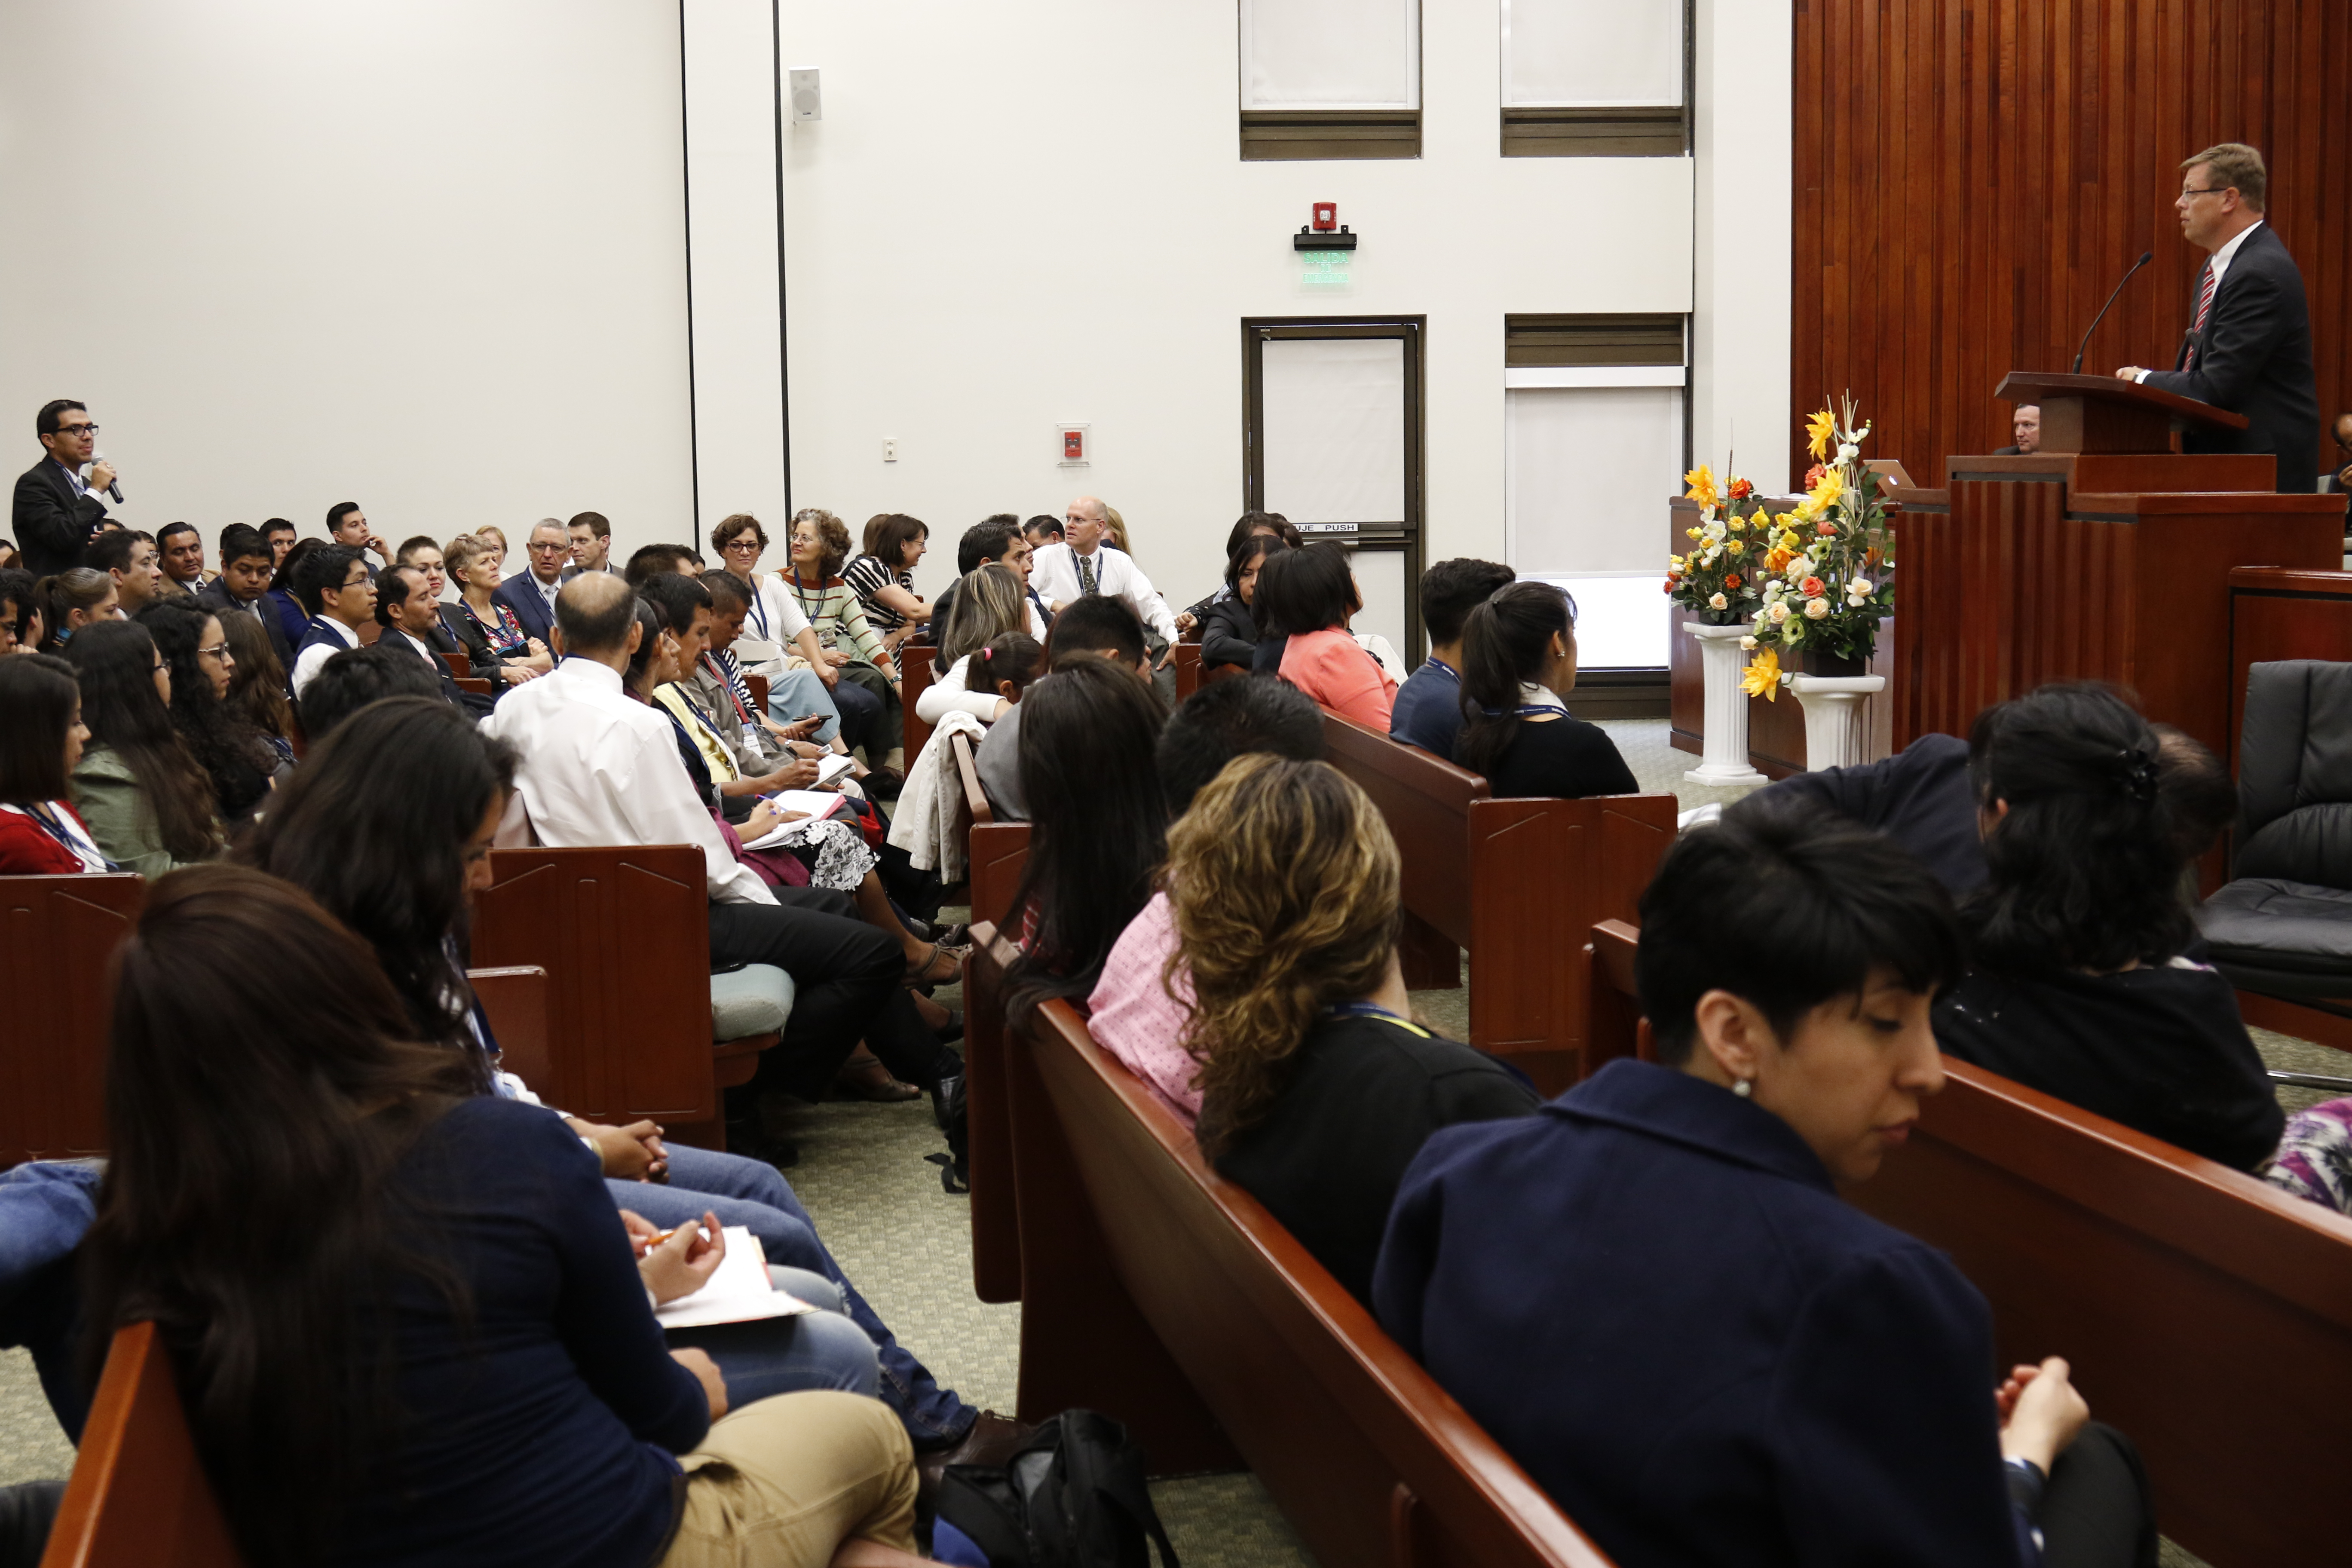 More than 250 students attended the Mexico City Connections Conference in person. Other participants viewed the conference from 52 different locations throughout Mexico.